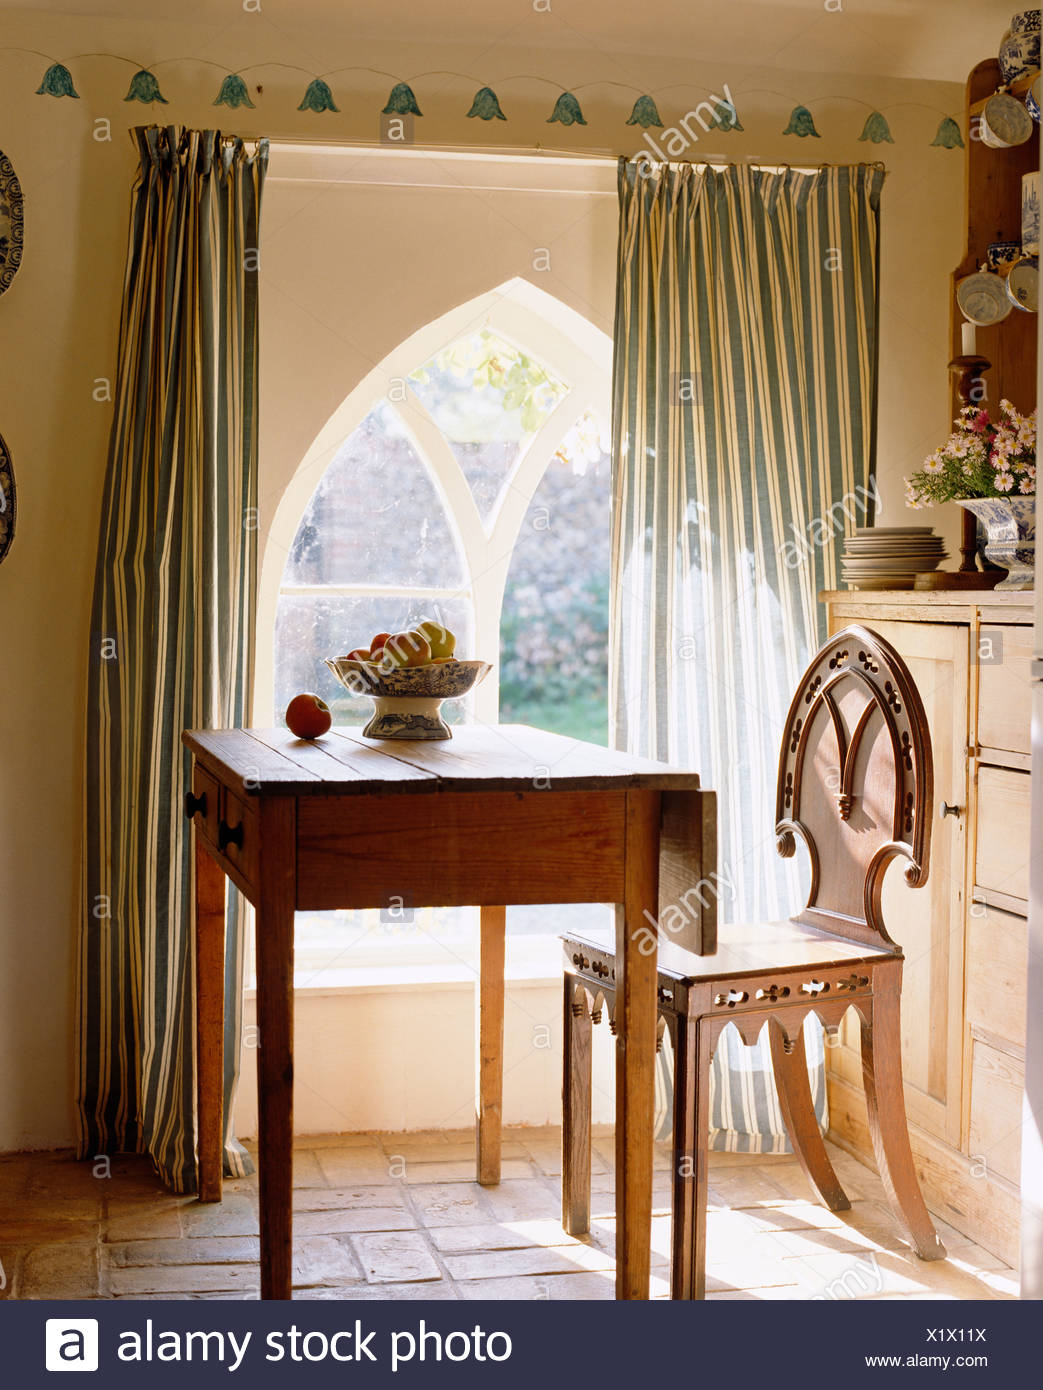 Gothic style chair stock photos gothic style chair stock for Chair next to window